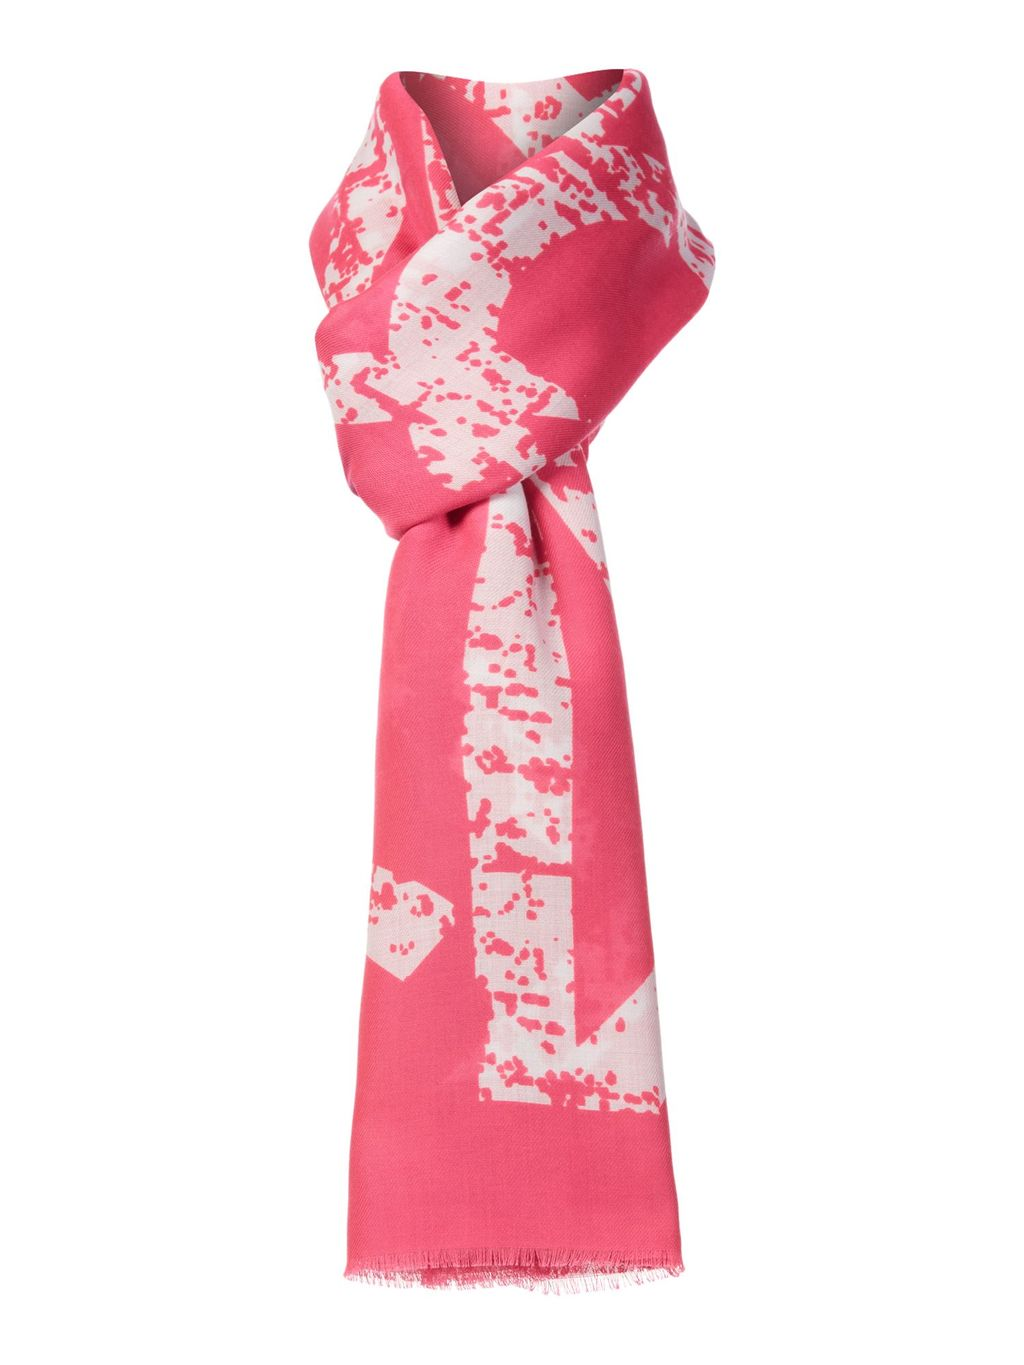 Neon Scarf, Pink - secondary colour: ivory/cream; predominant colour: pink; occasions: casual; type of pattern: standard; style: regular; size: standard; material: fabric; pattern: patterned/print; season: a/w 2015; wardrobe: highlight